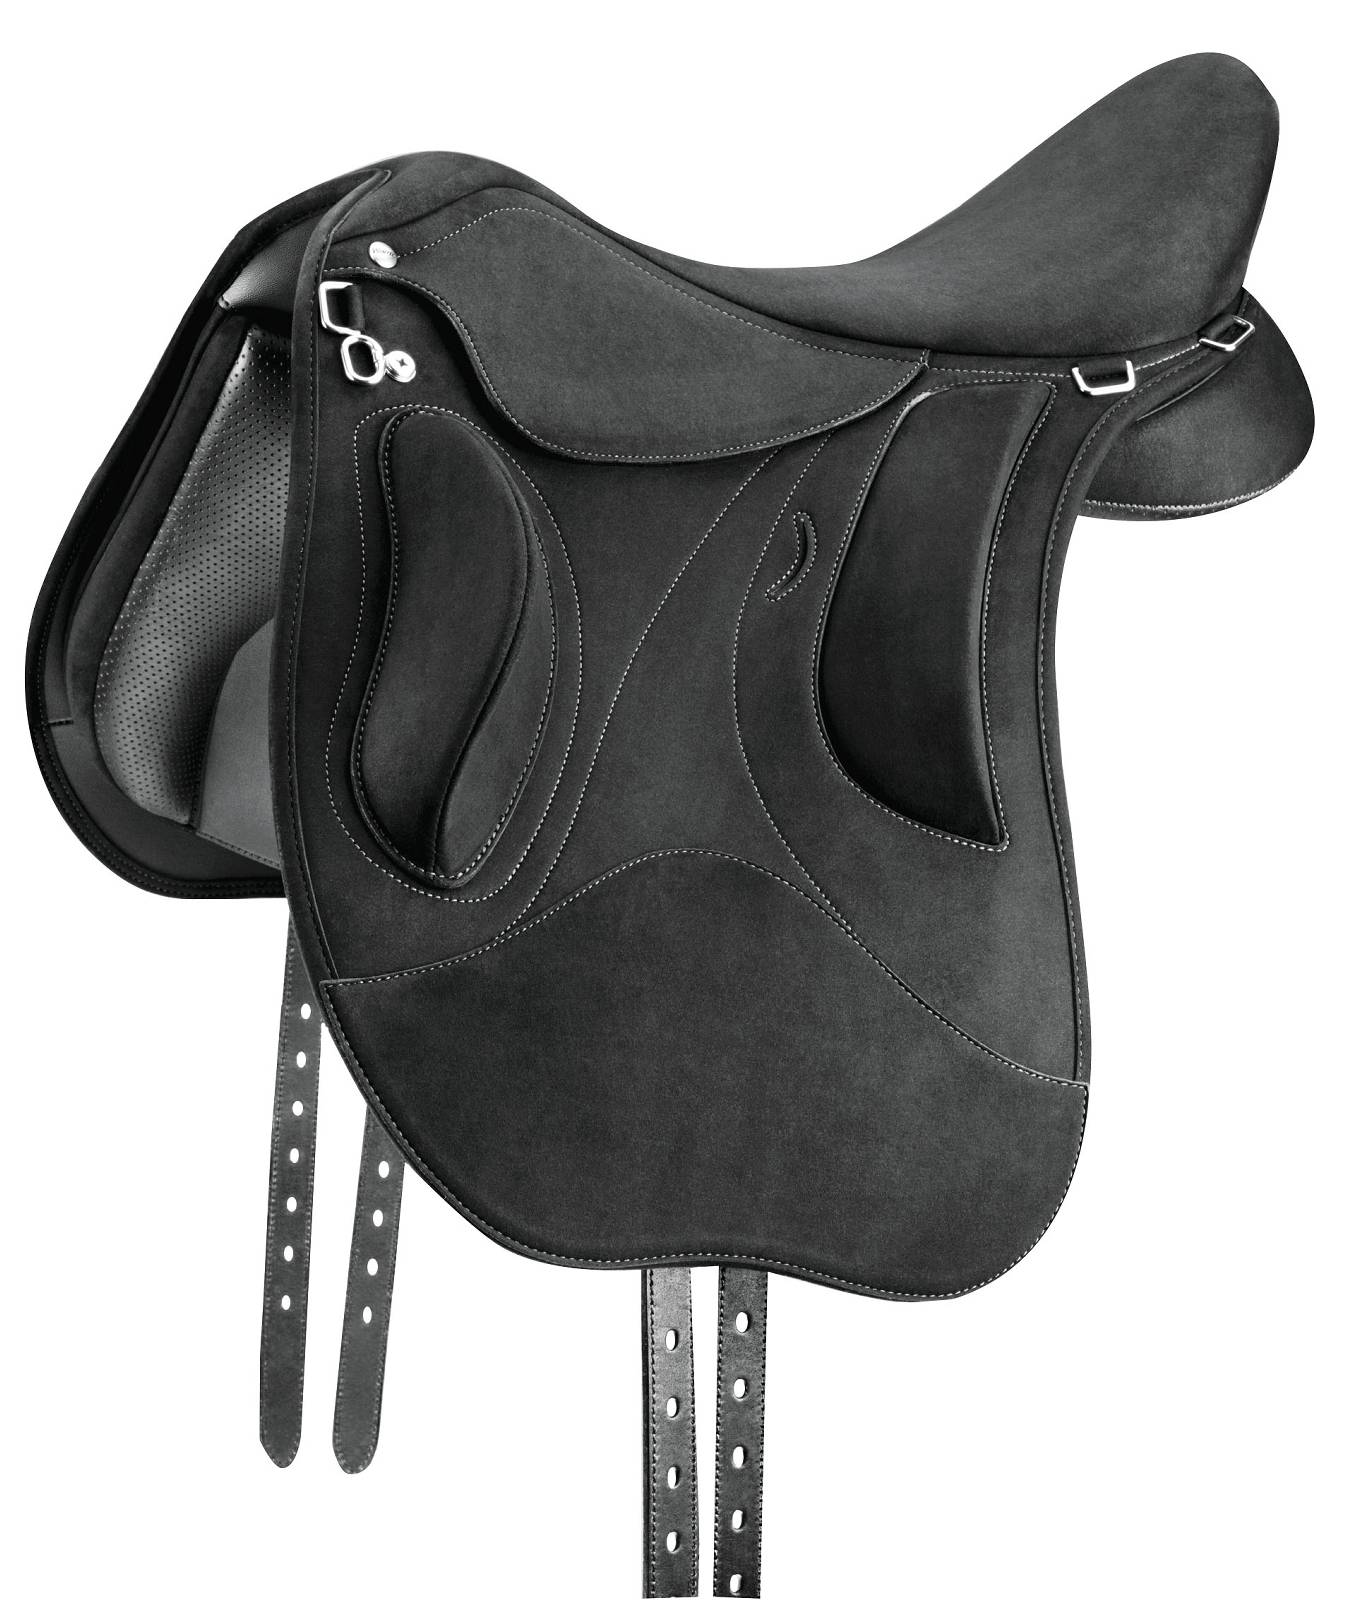 Wintec Pro Endurance Saddle With Flexicontourbloc - Cair